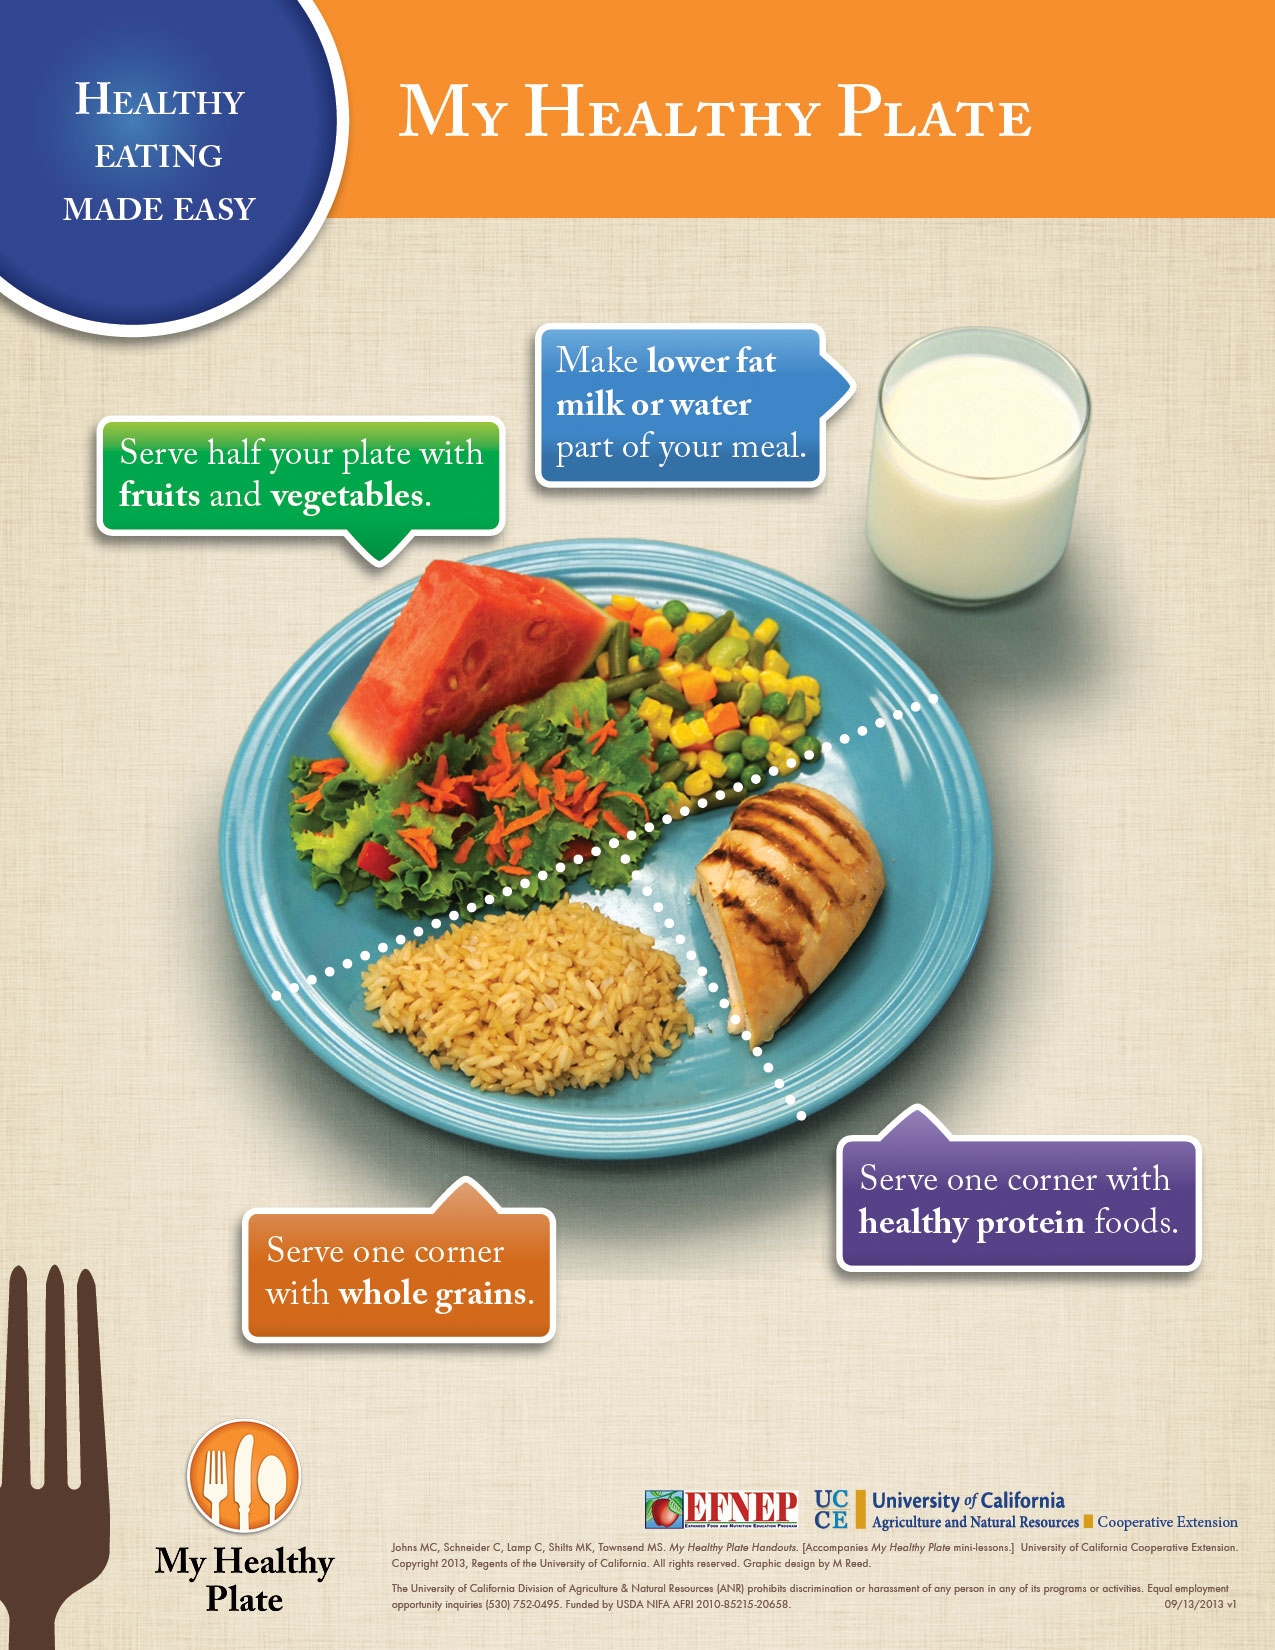 Picture This Ucce Focuses On Healthy Meals For Healthy Weight Week Jan 18 24 Food Blog Anr Blogs